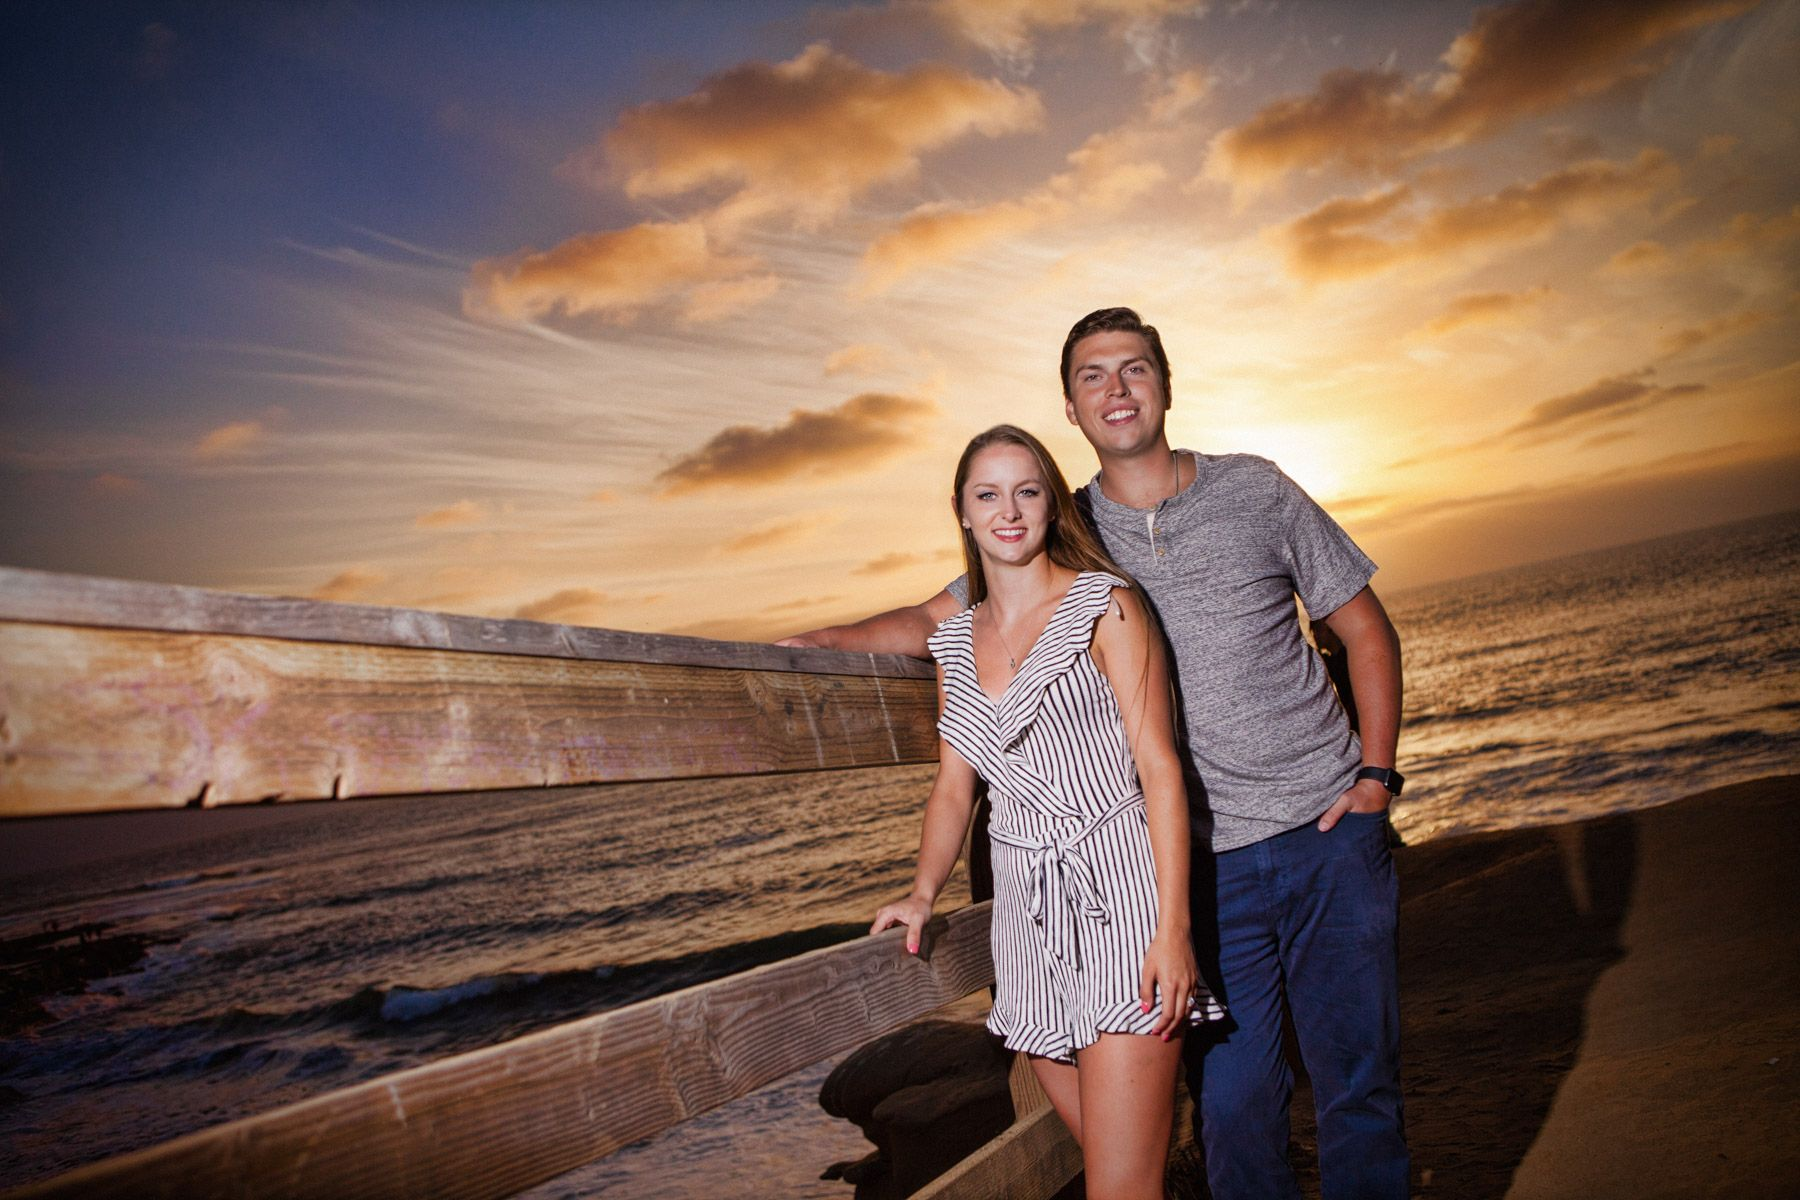 Engagement Photography, The Wedding Bowl, La Jolla California.